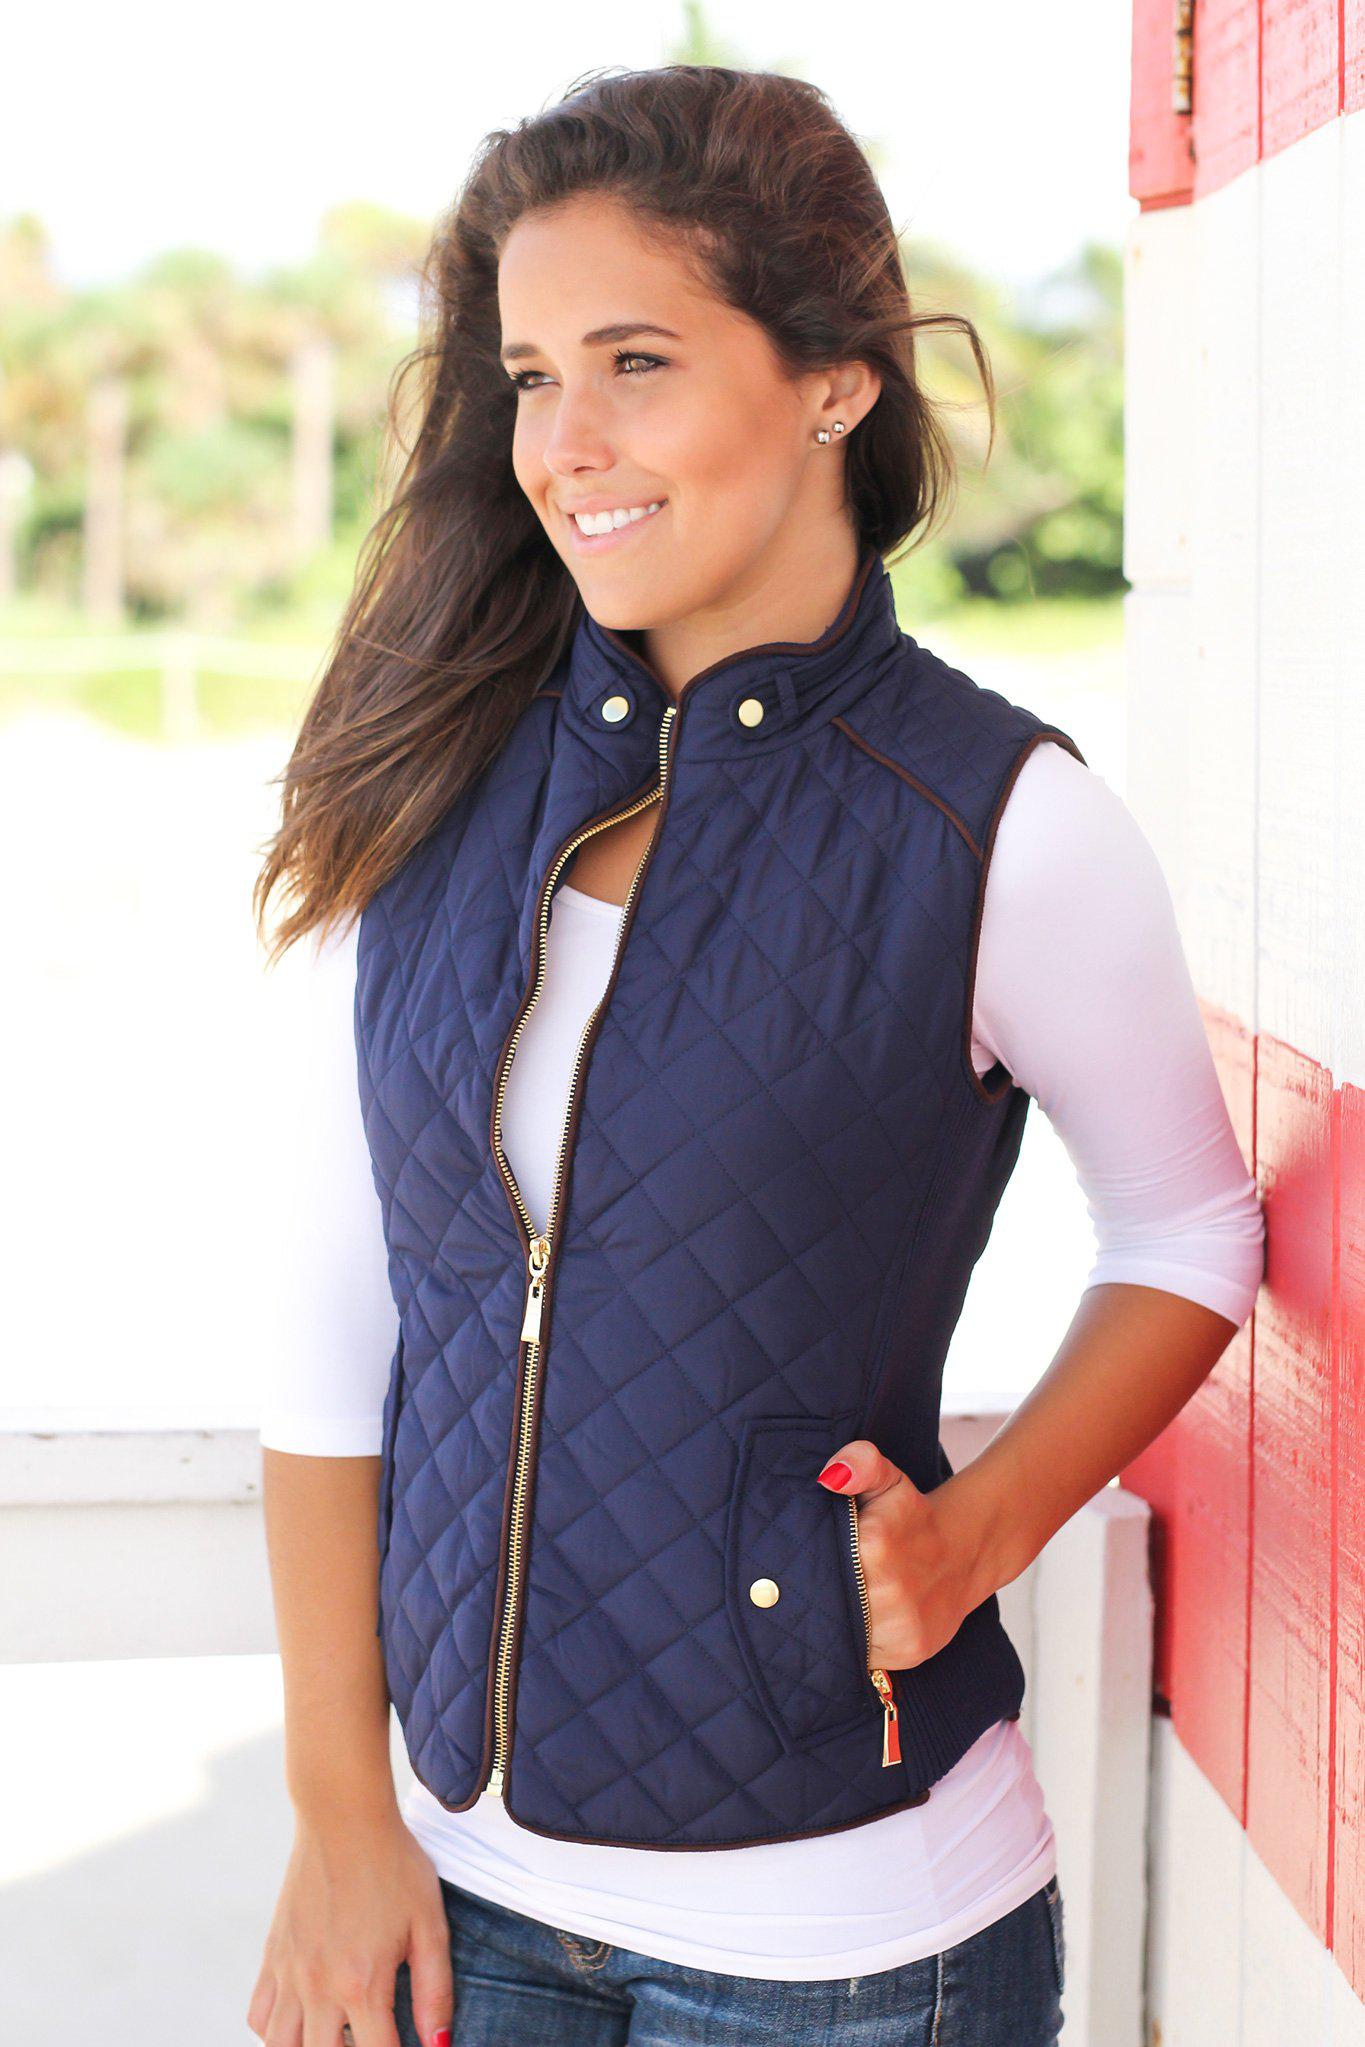 Dark Navy Quilted Vest With Pockets | Online Boutiques – Saved by ... : quilted vest navy - Adamdwight.com